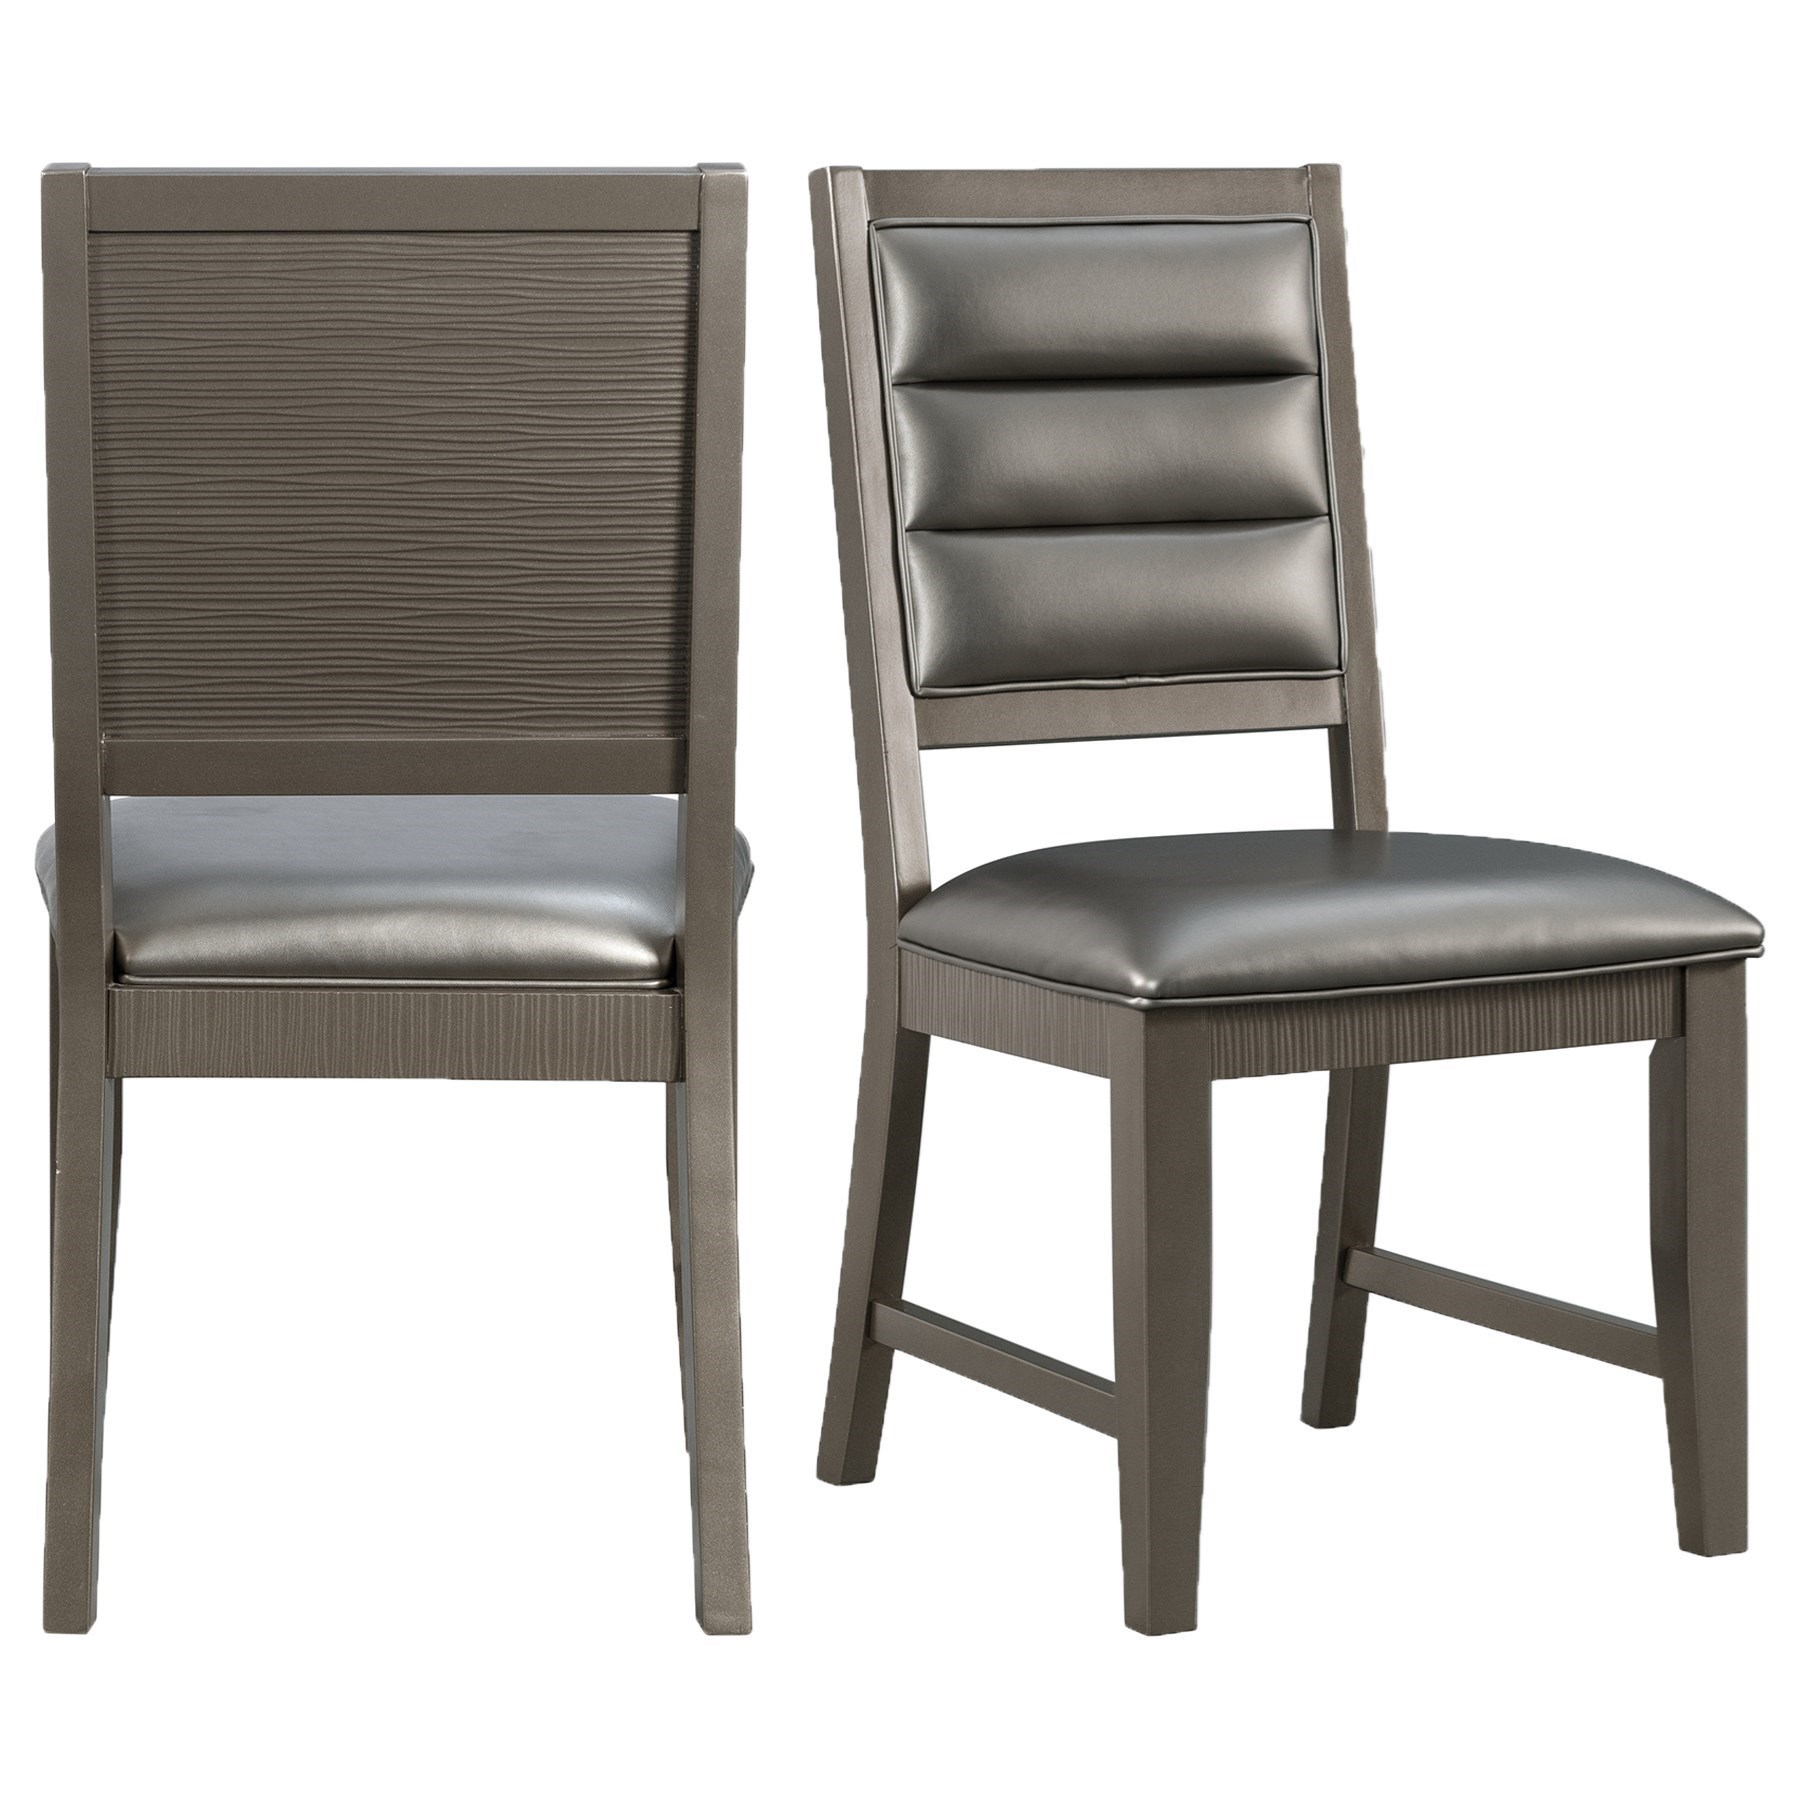 14.5 Standard Height Side Chair by Elements International at Powell's Furniture and Mattress